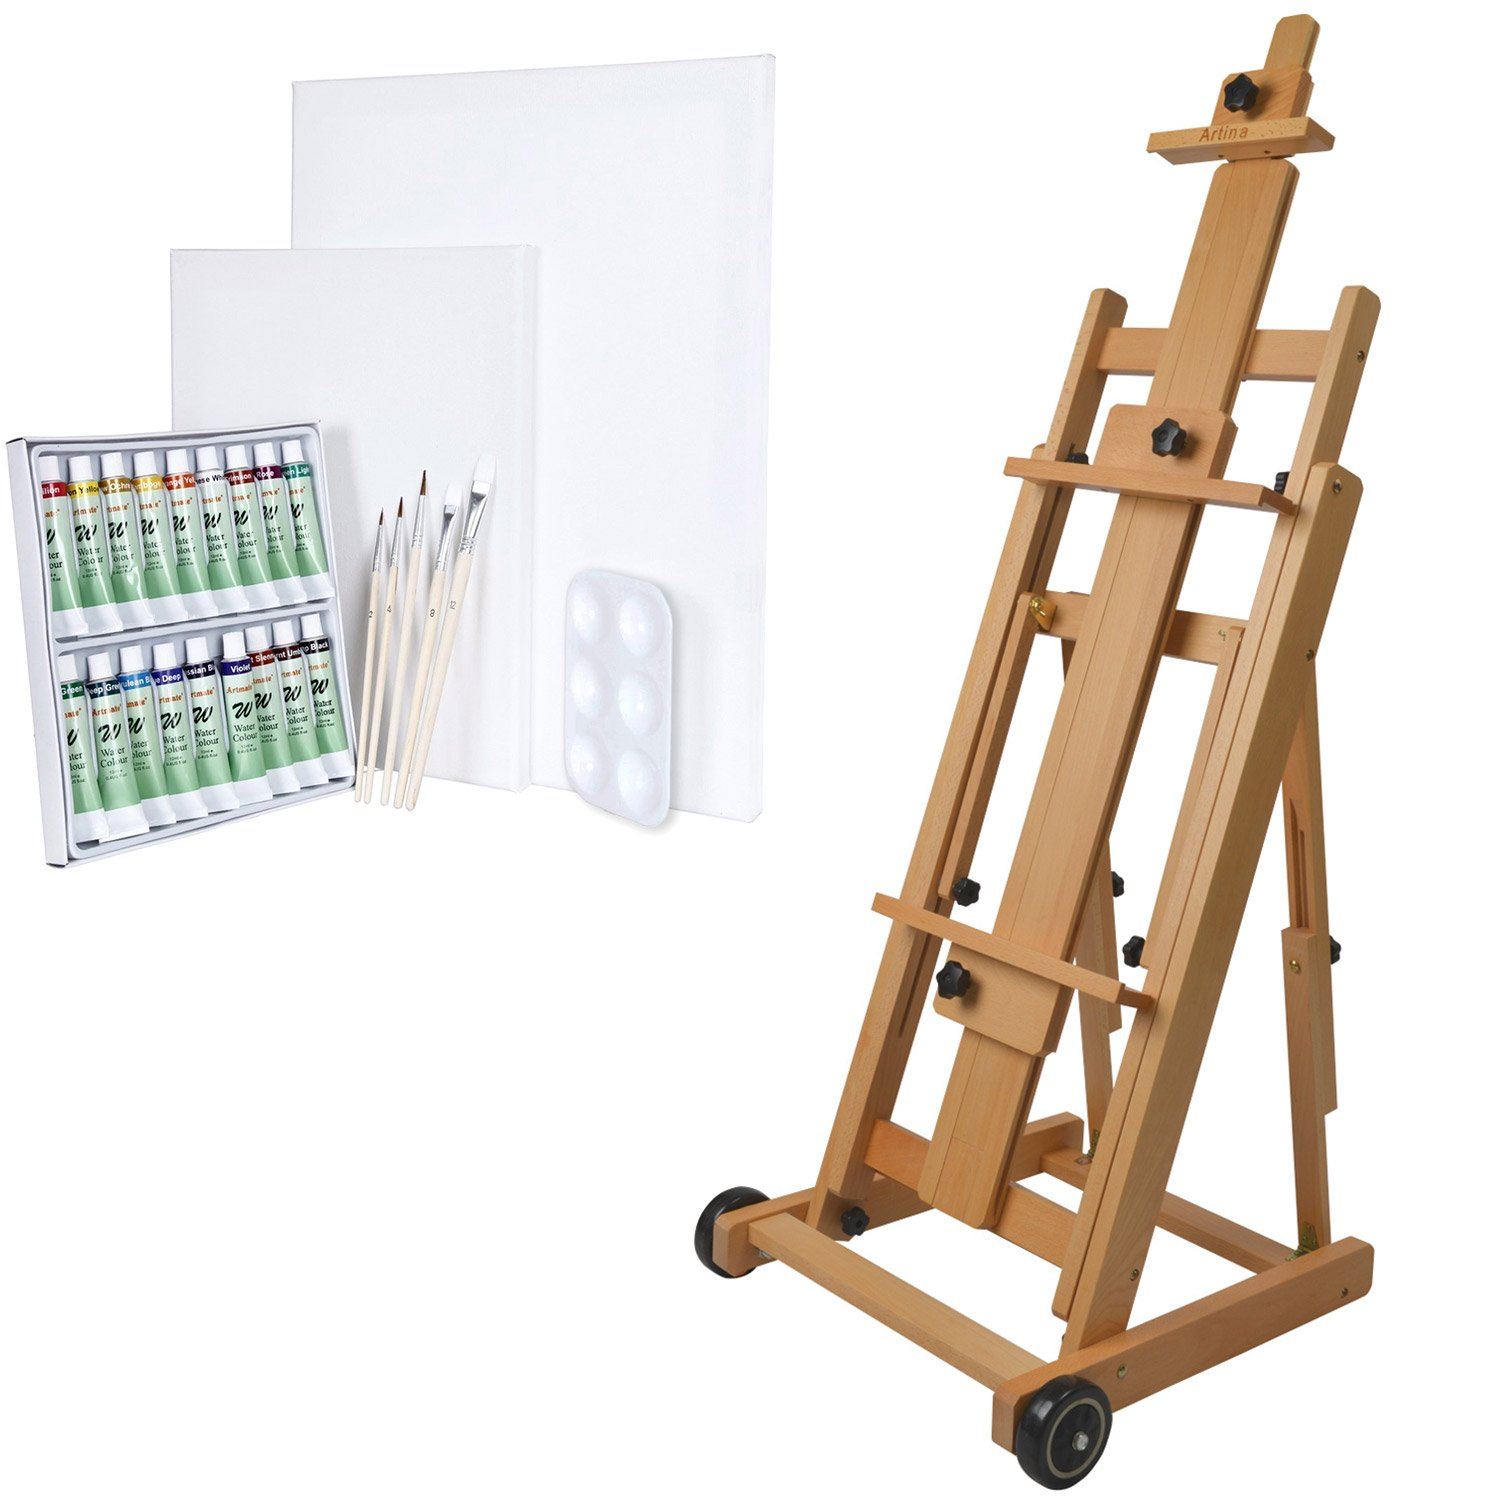 Artina Studio Easel Bordeaux - Beech-Wood - Artist Easel for Horizontal Painting and Display - 47.5x132(209) x49.5cm